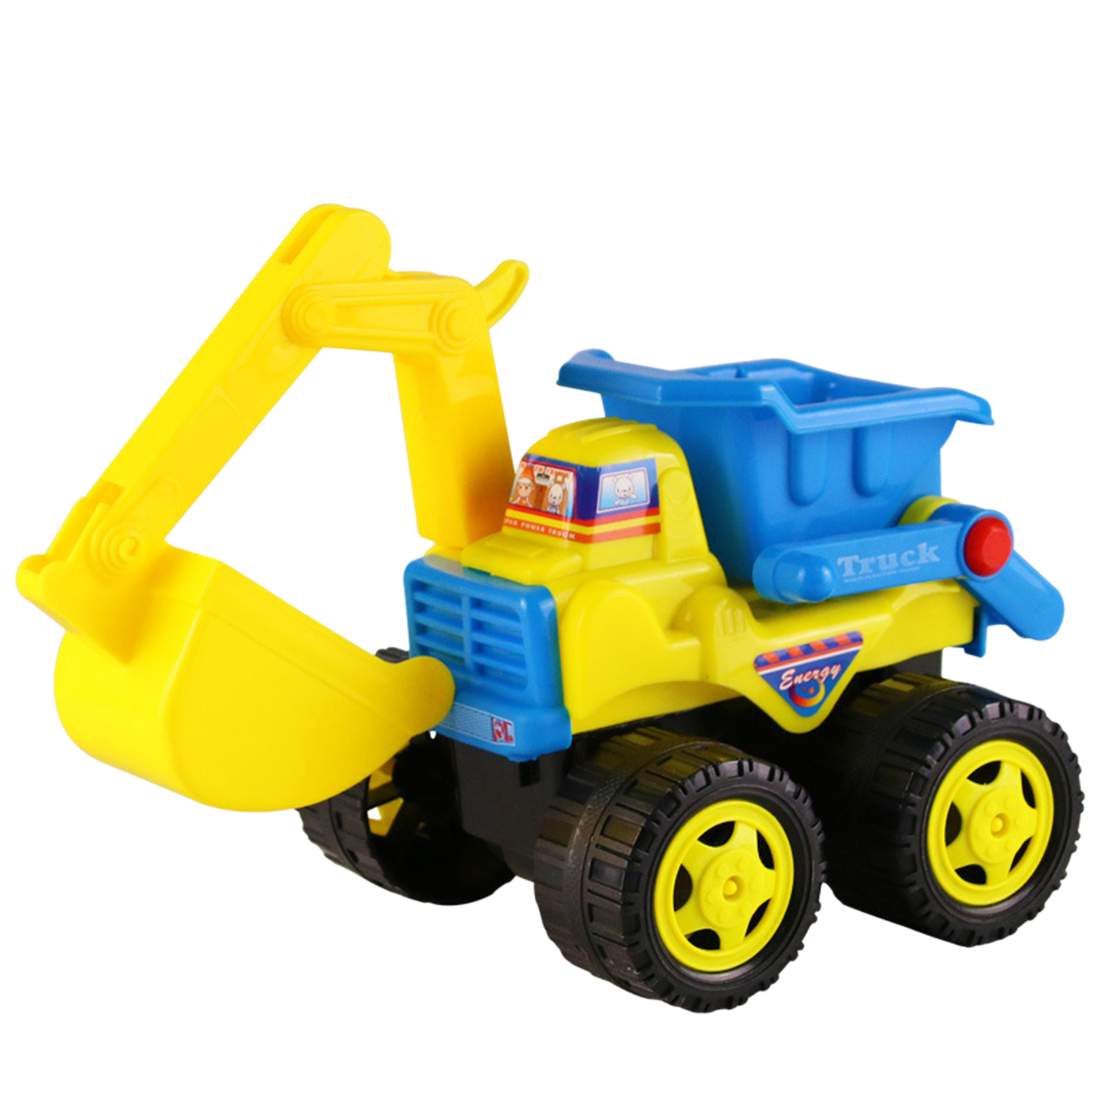 Small Size Kids Beach Sand Toys Inertia Construction Vehicle Inertia Beach Excavator Bulldozer Toy For Children Boys